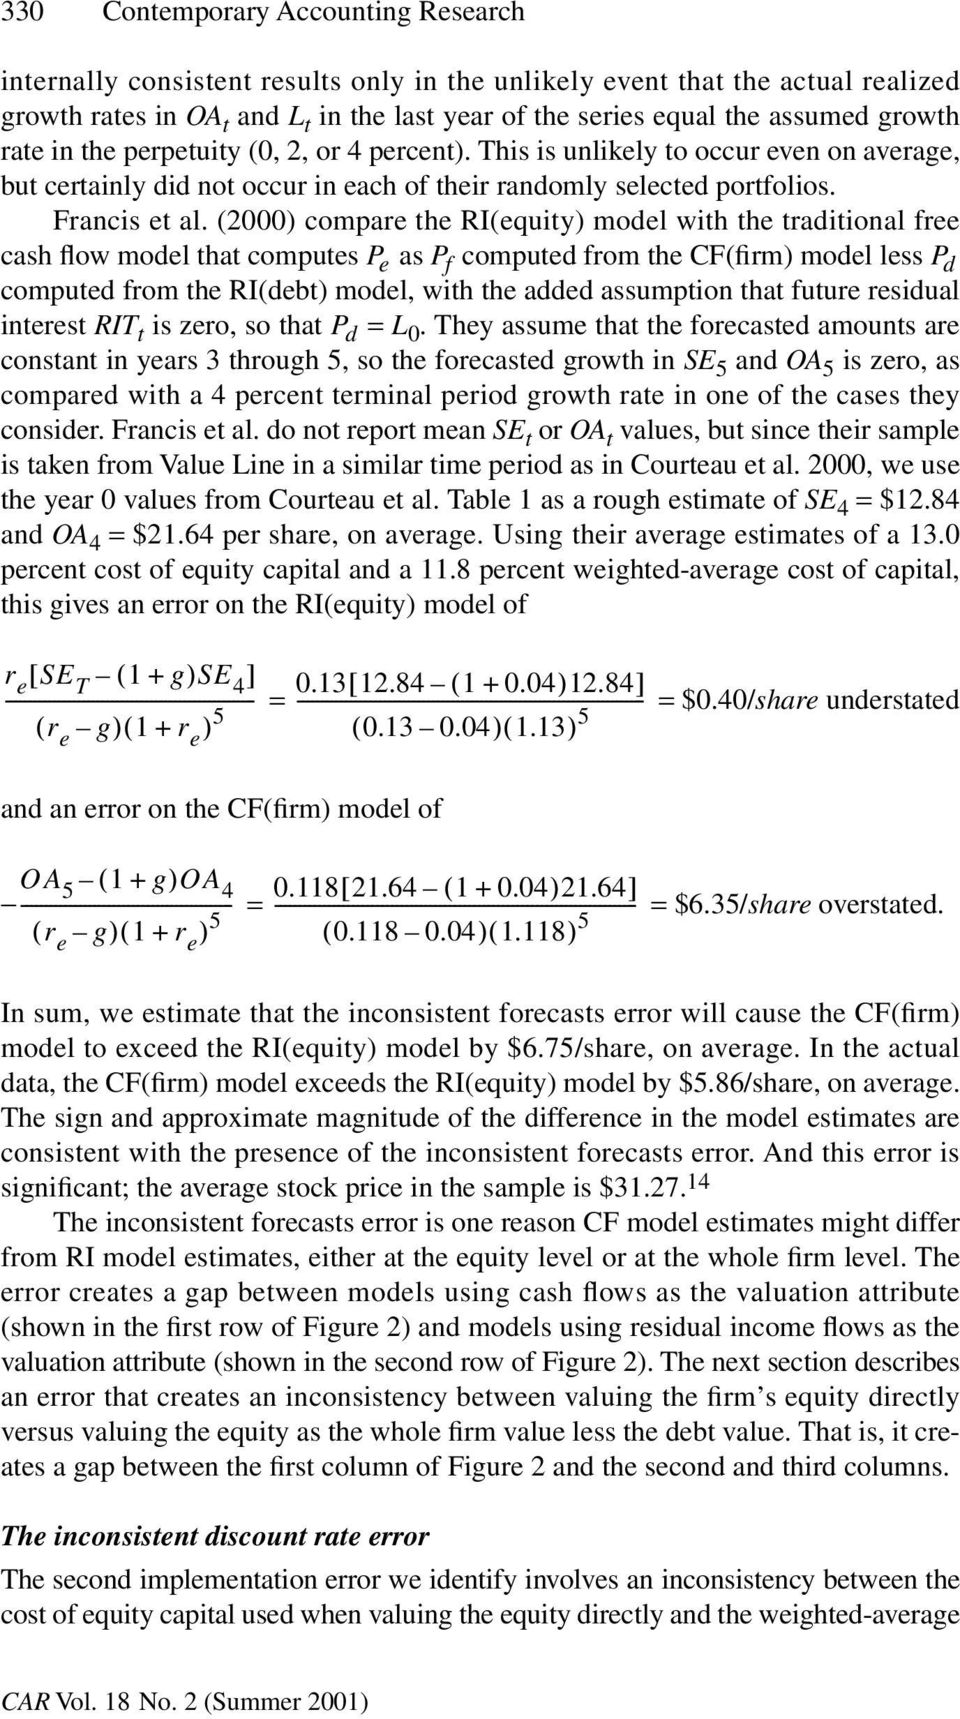 (2000) compare the RI(equity) model with the traditional free cash flow model that computes P e as P f computed from the CF(firm) model less P d computed from the RI(debt) model, with the added